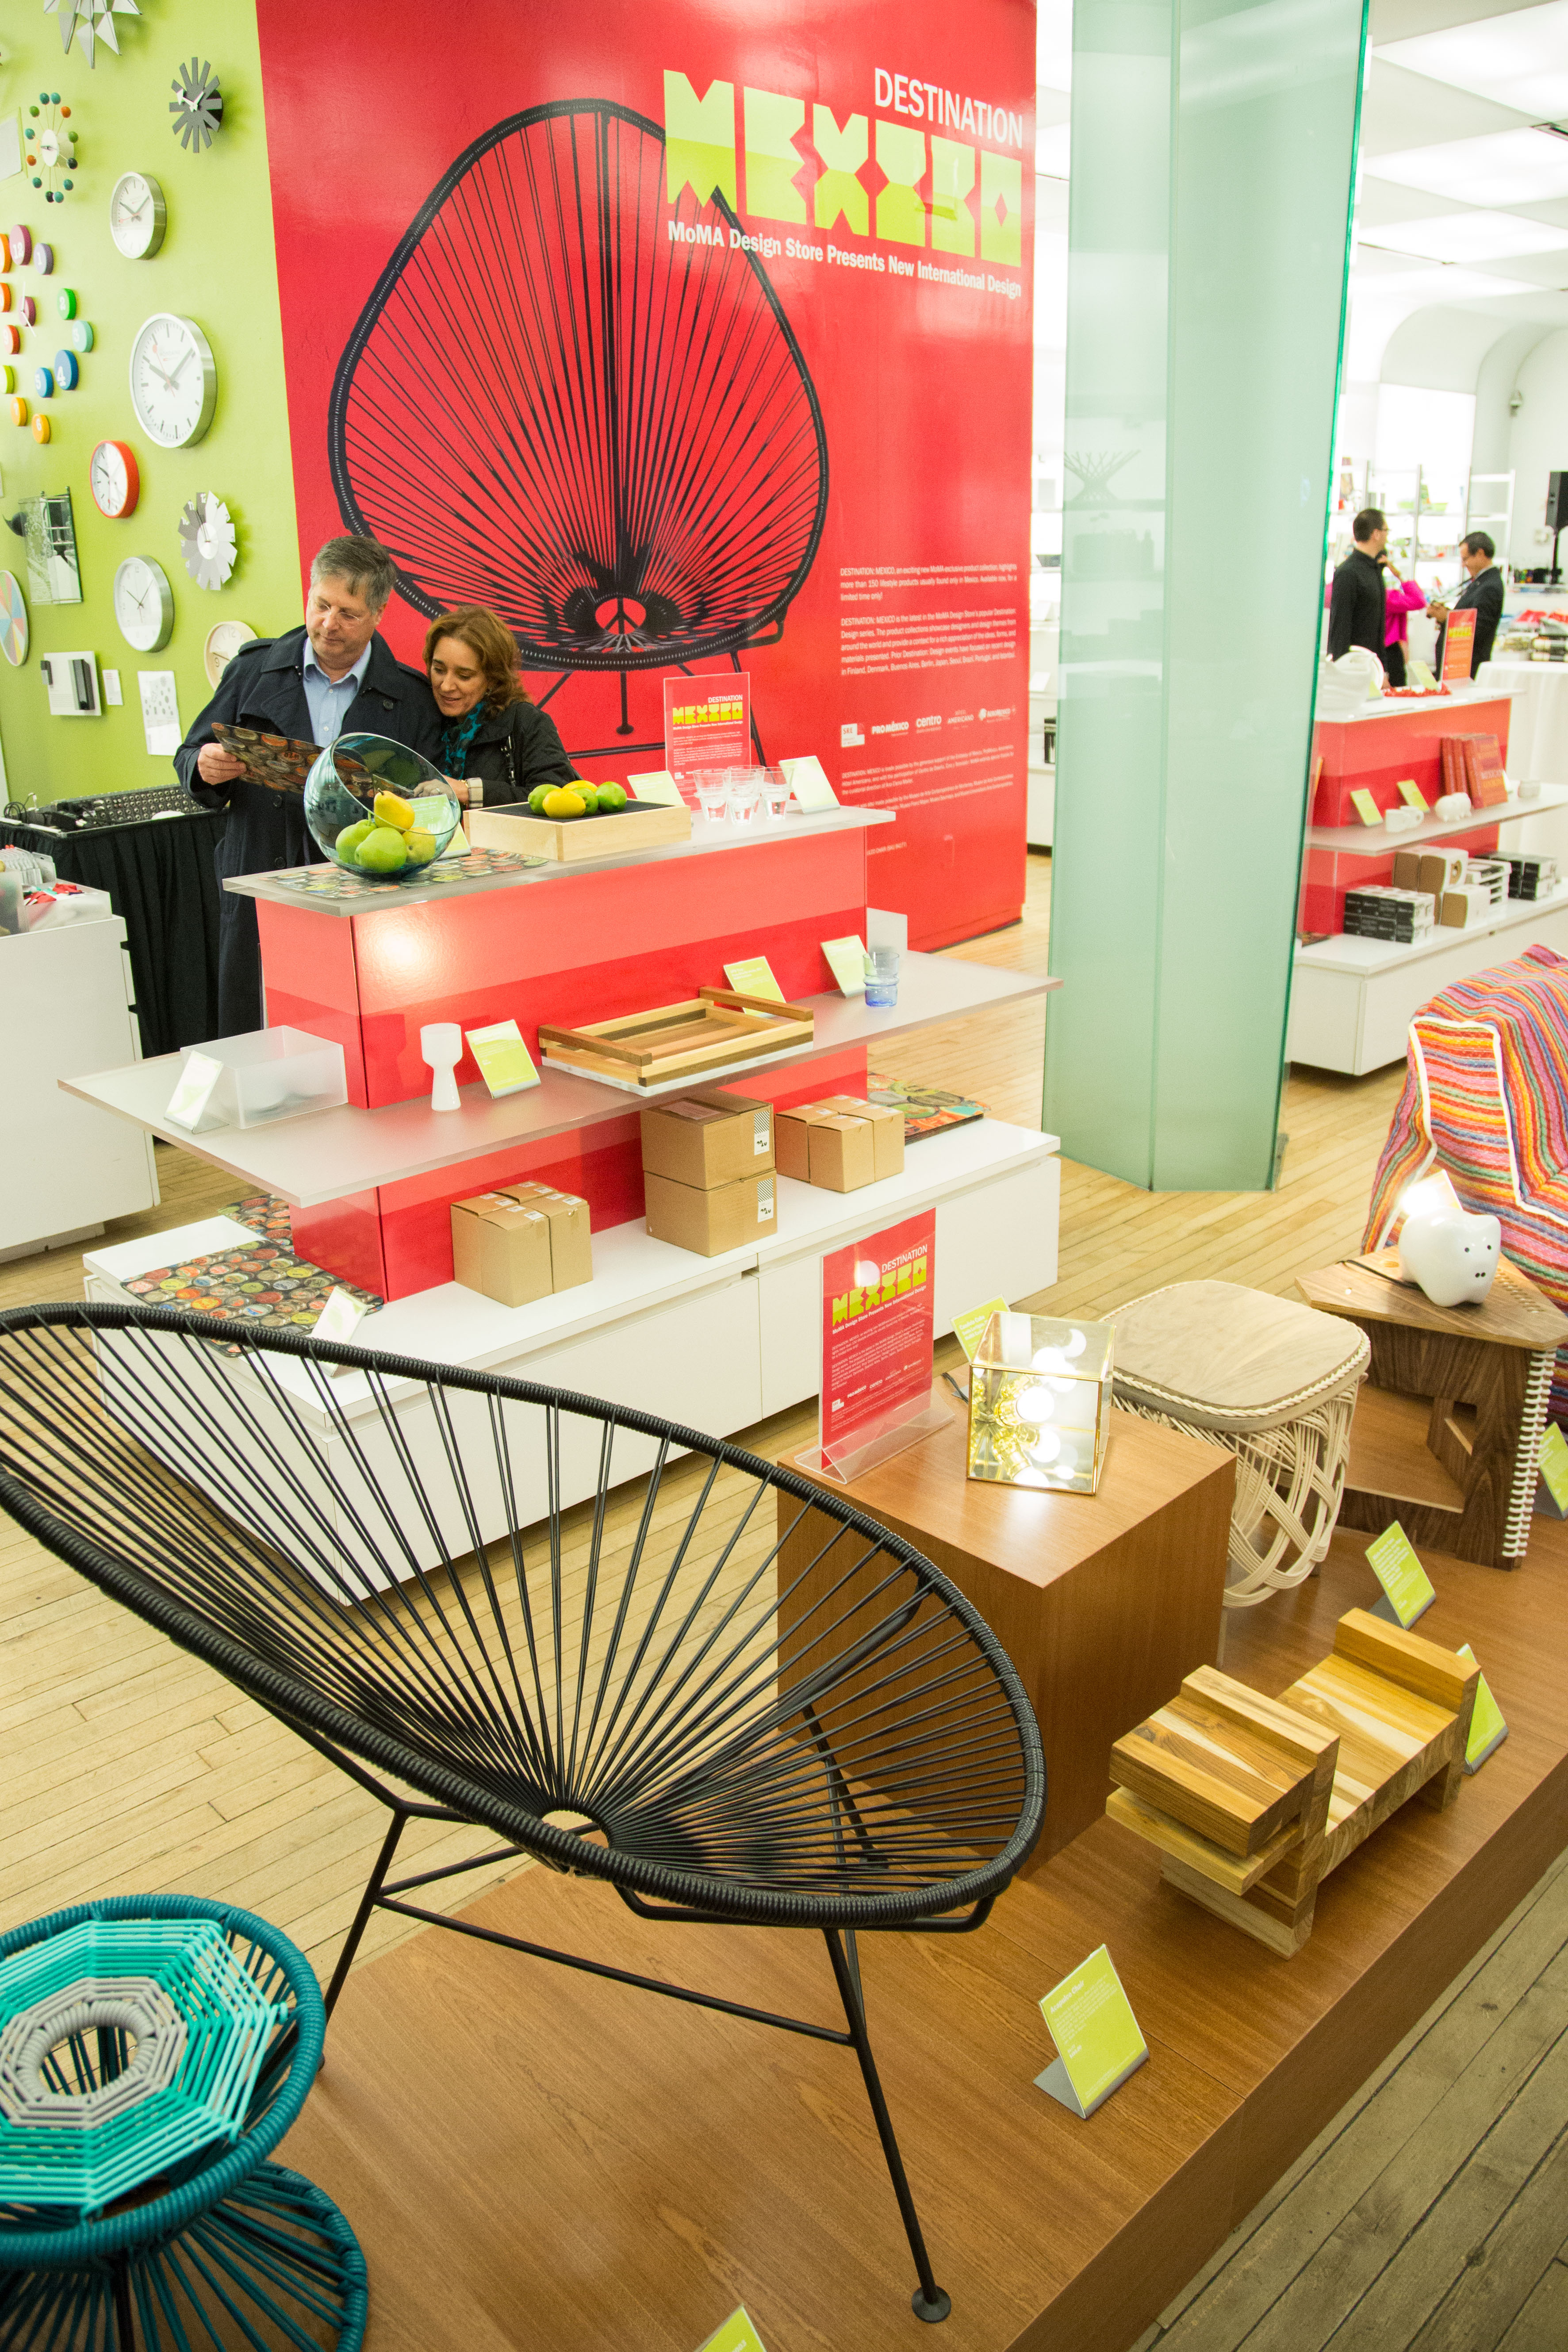 MoMA Design Store celebrates emerging Mexican designers